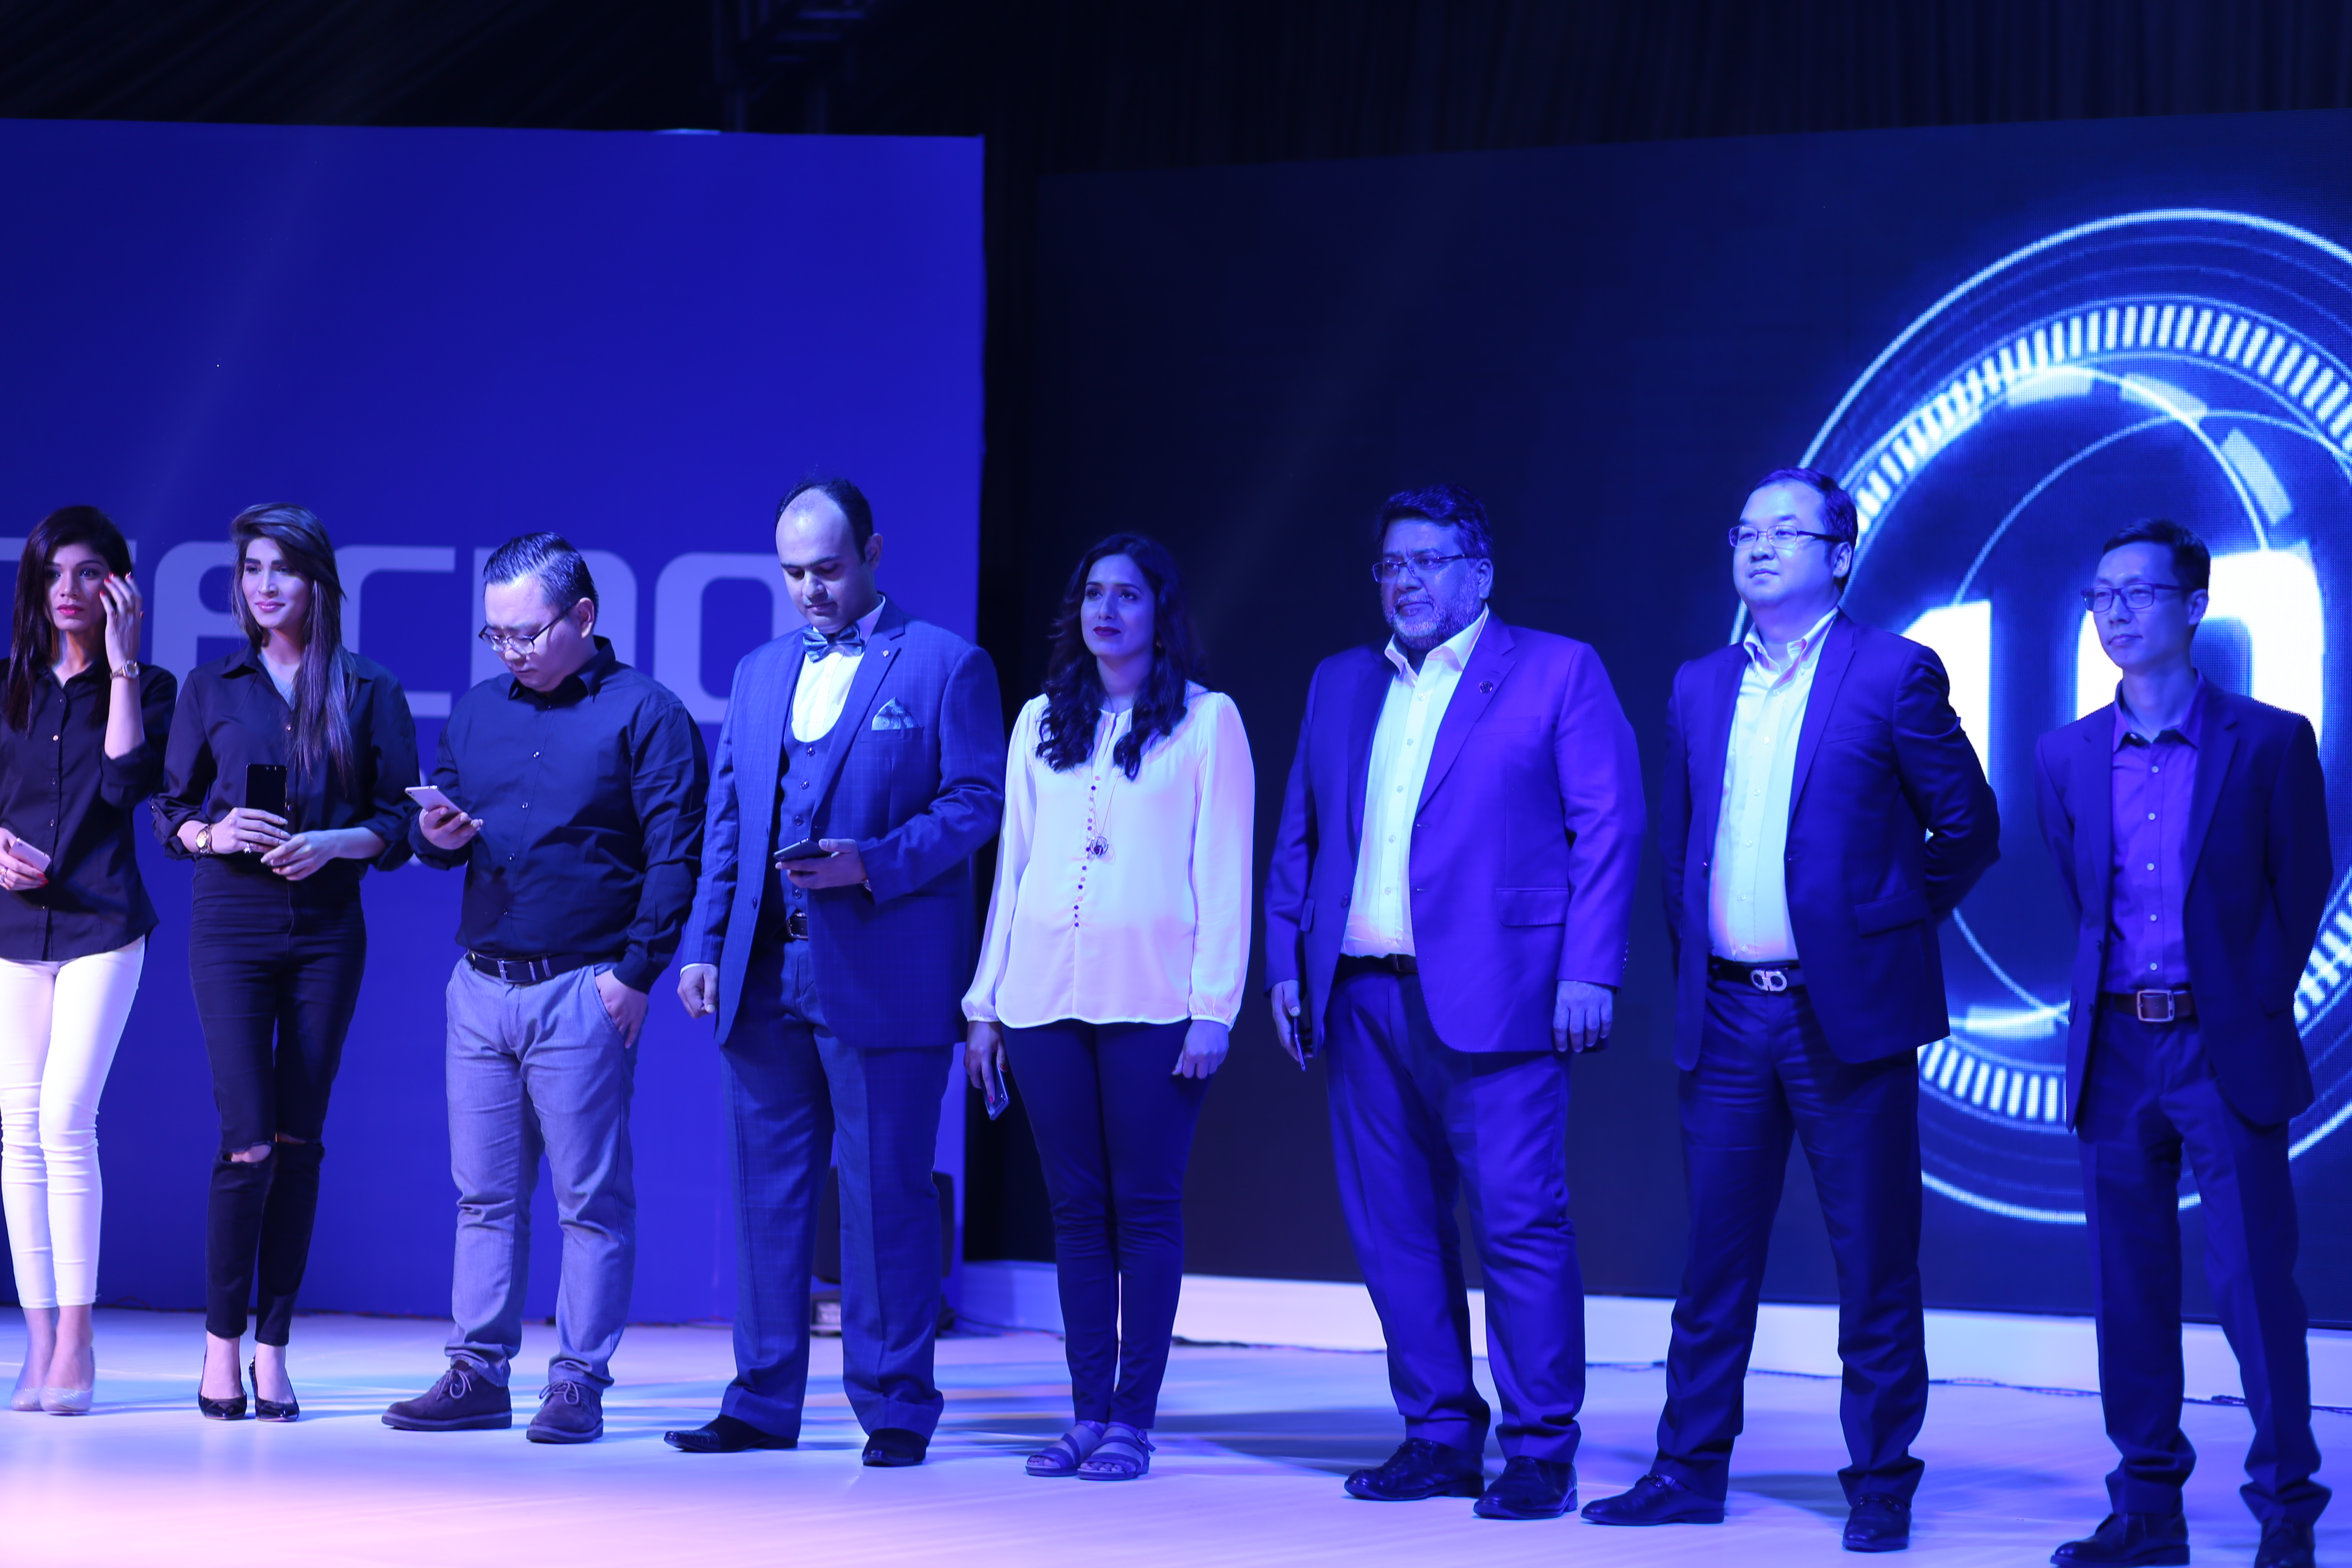 Product Manager , Sufyan Ali (Retail Manager) , Saira Ghaffar (ATL Manager) , Ejaz Hassan(CEO United), Stephen Ha (CEO Tecno Mobile), Mr. Willie (VP Transsion Holdings)unveiling CX